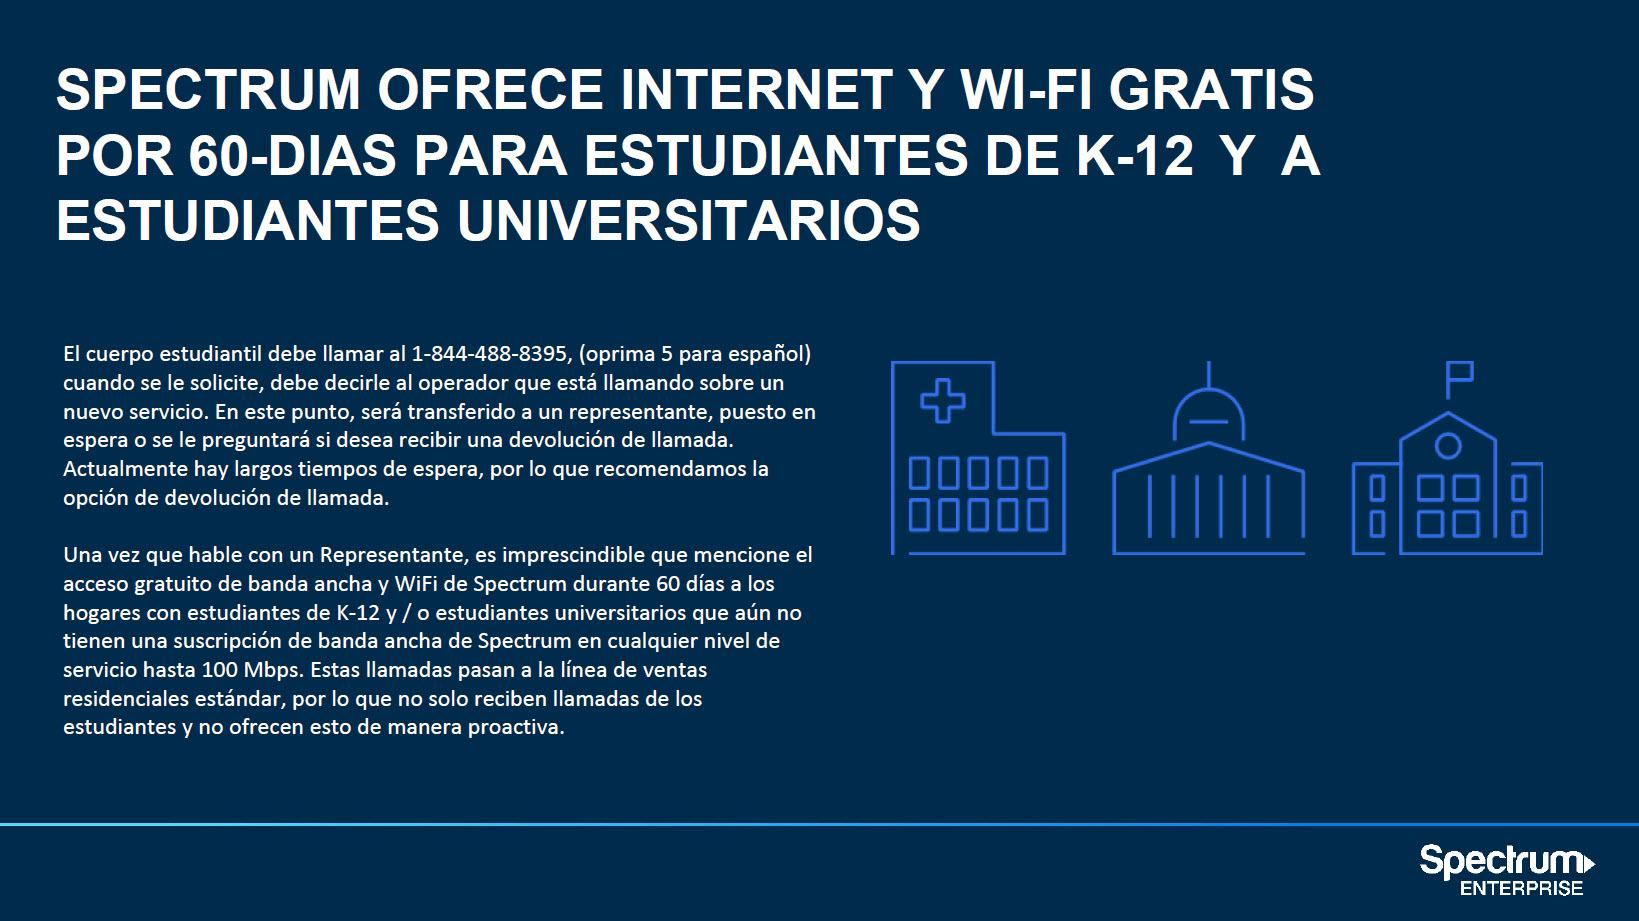 Spectrum Internet Y WiFi Gratis